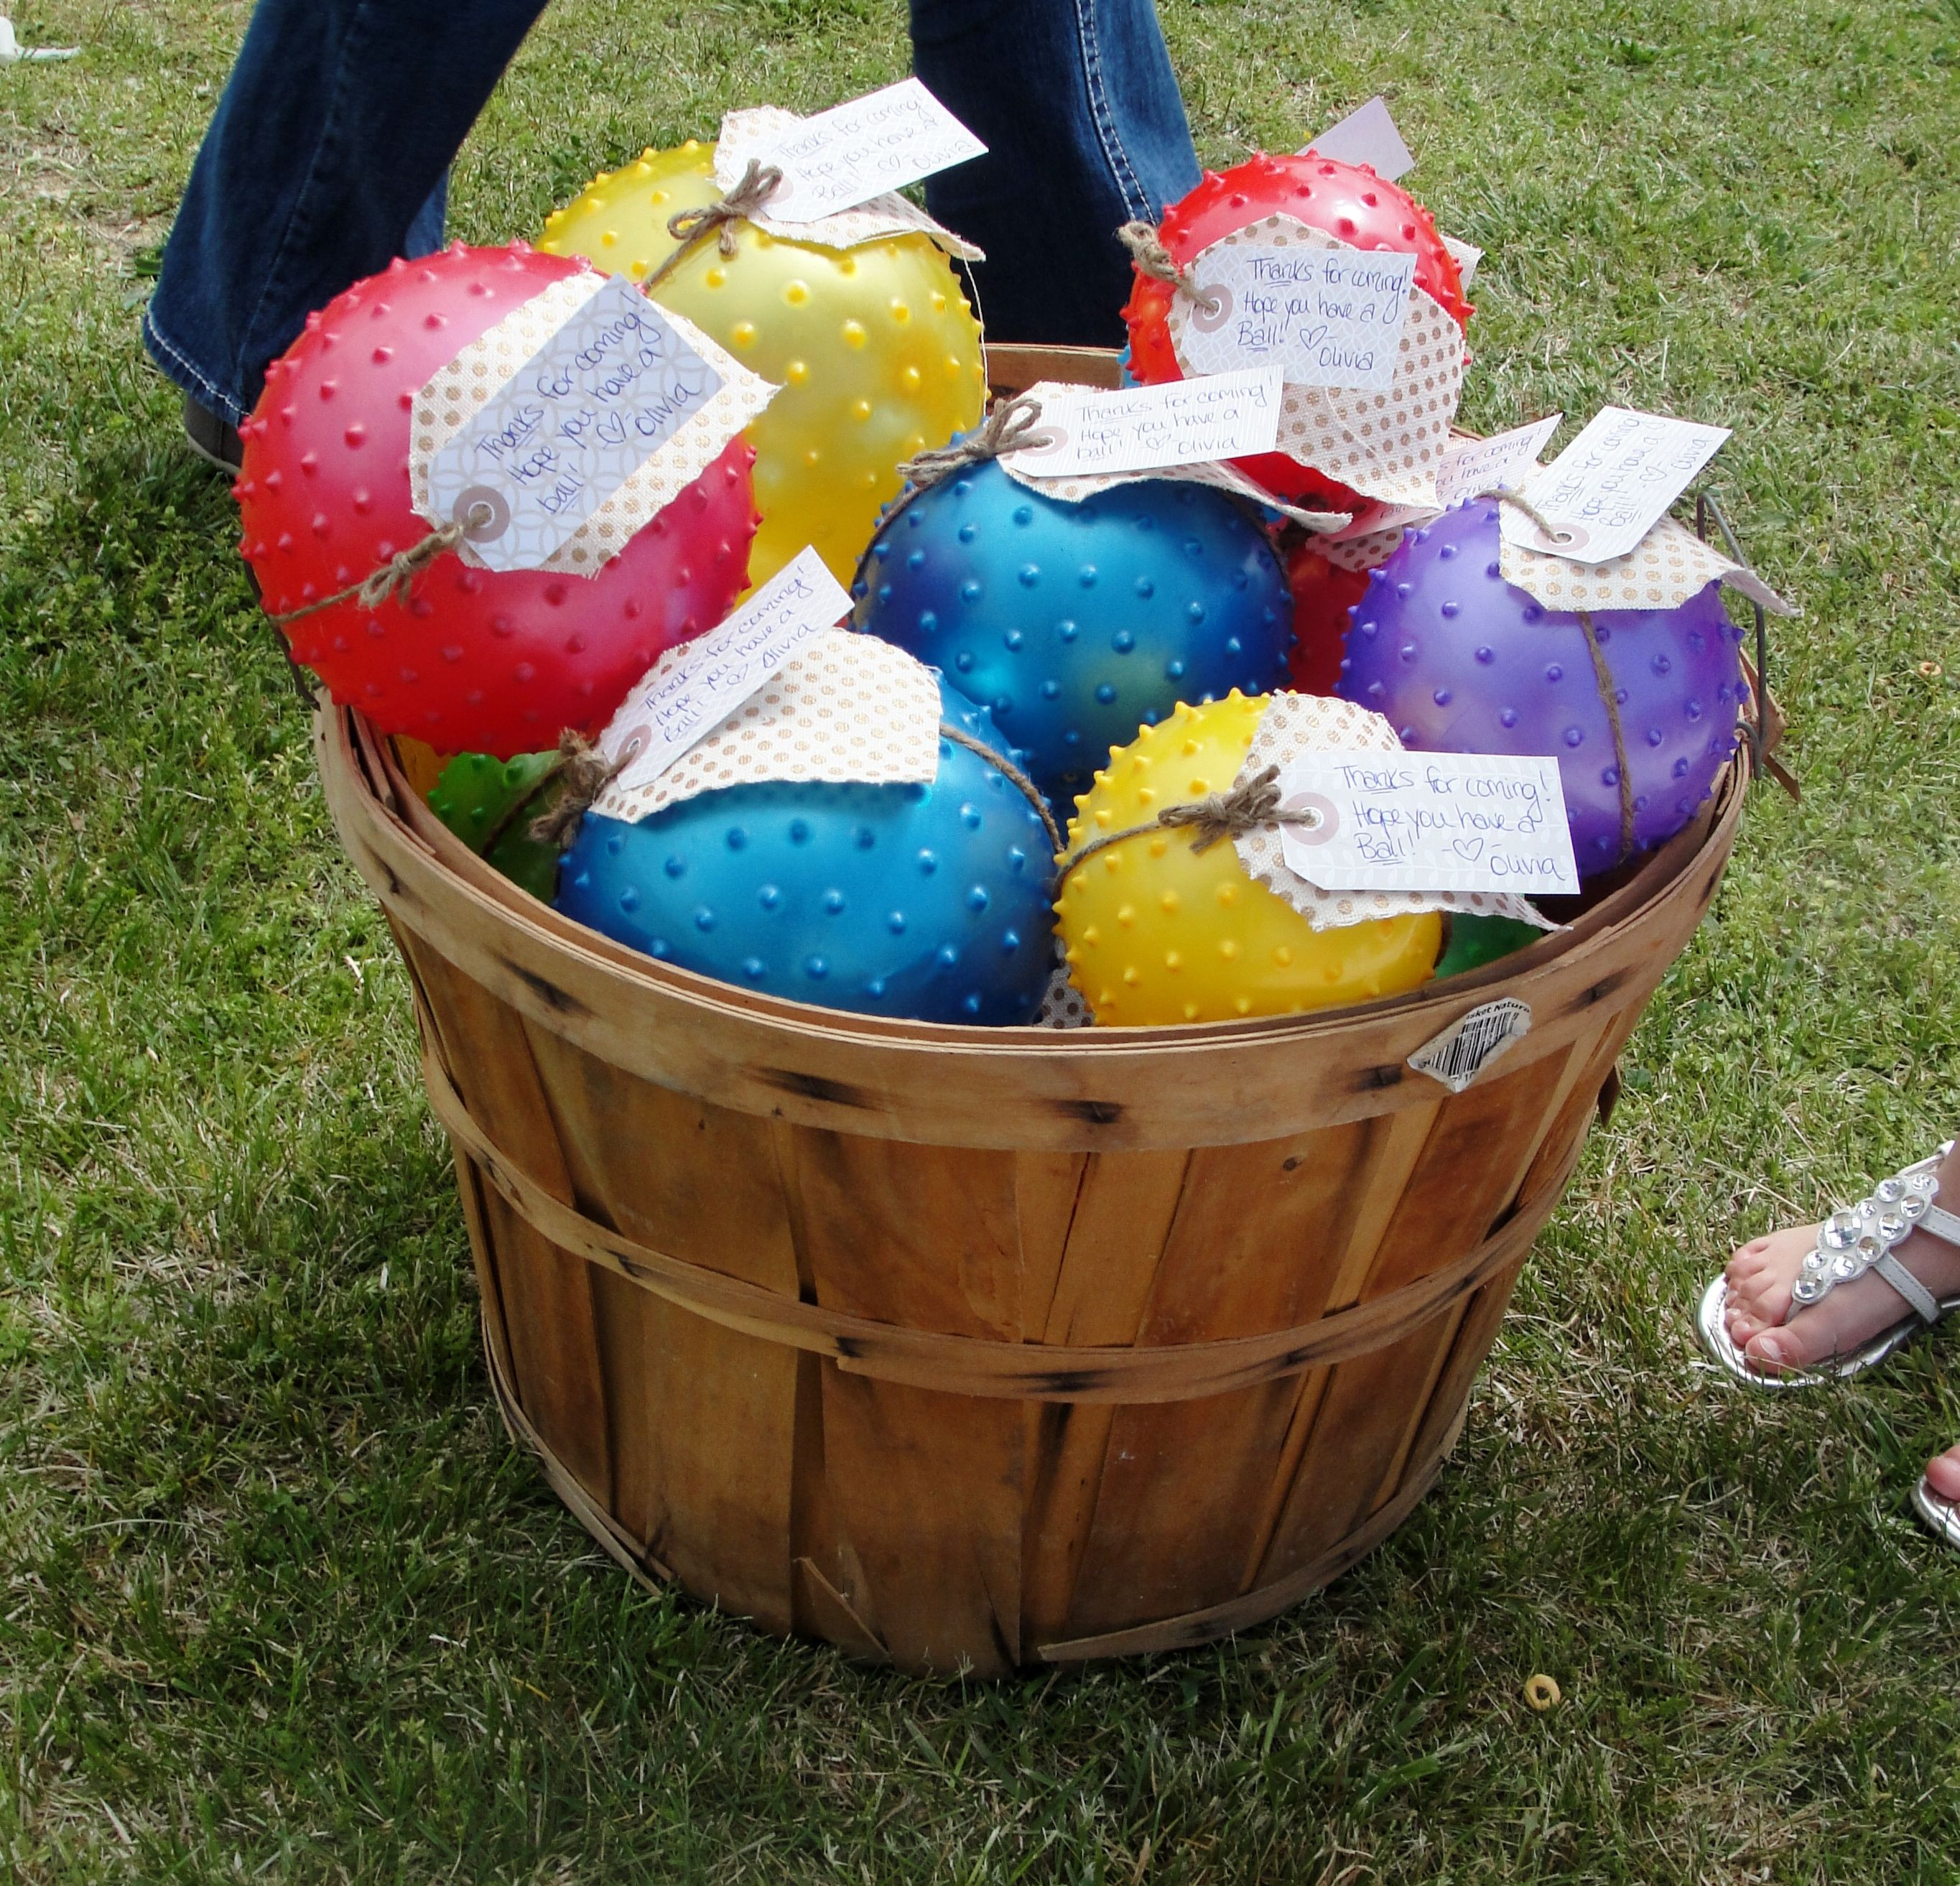 Best ideas about First Birthday Party Favors . Save or Pin Party favors for first birthday party Sensory balls Now.